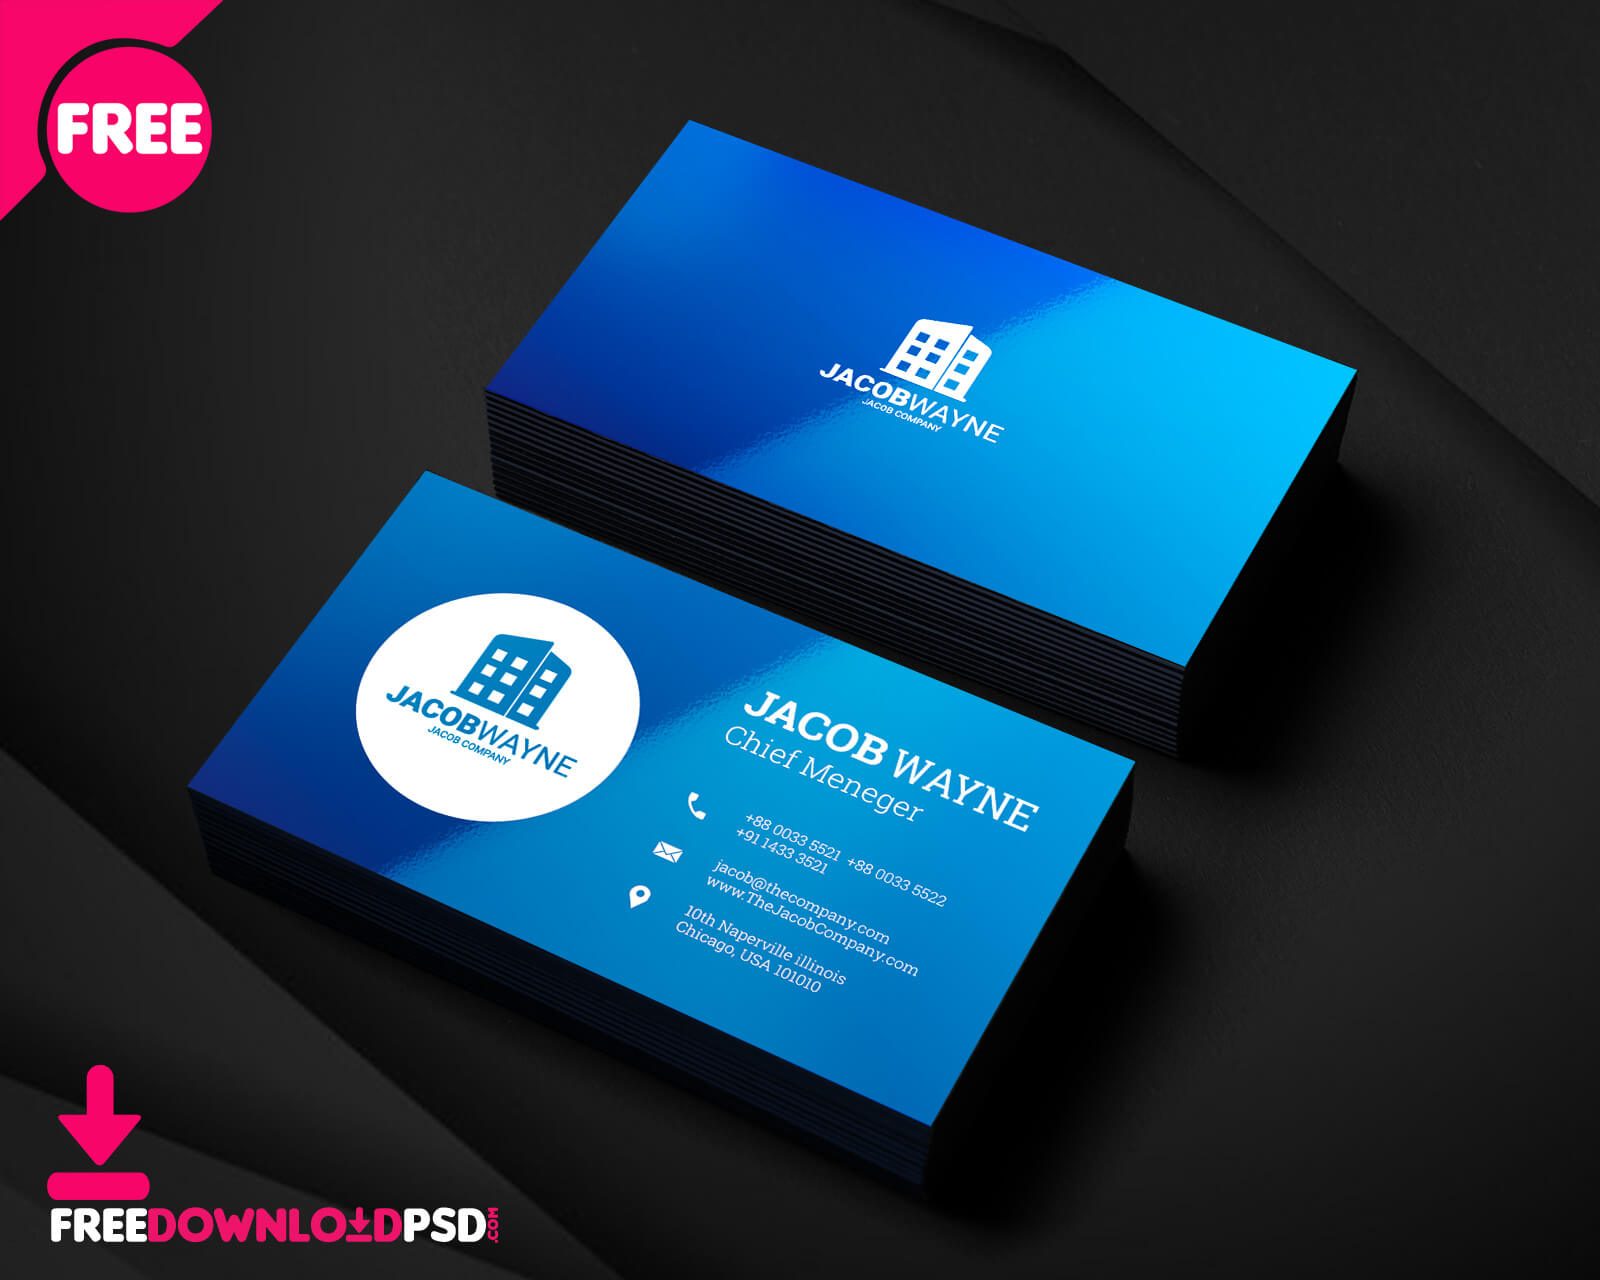 Real Estate Business Card Psd   Freedownloadpsd with Photoshop Cs6 Business Card Template